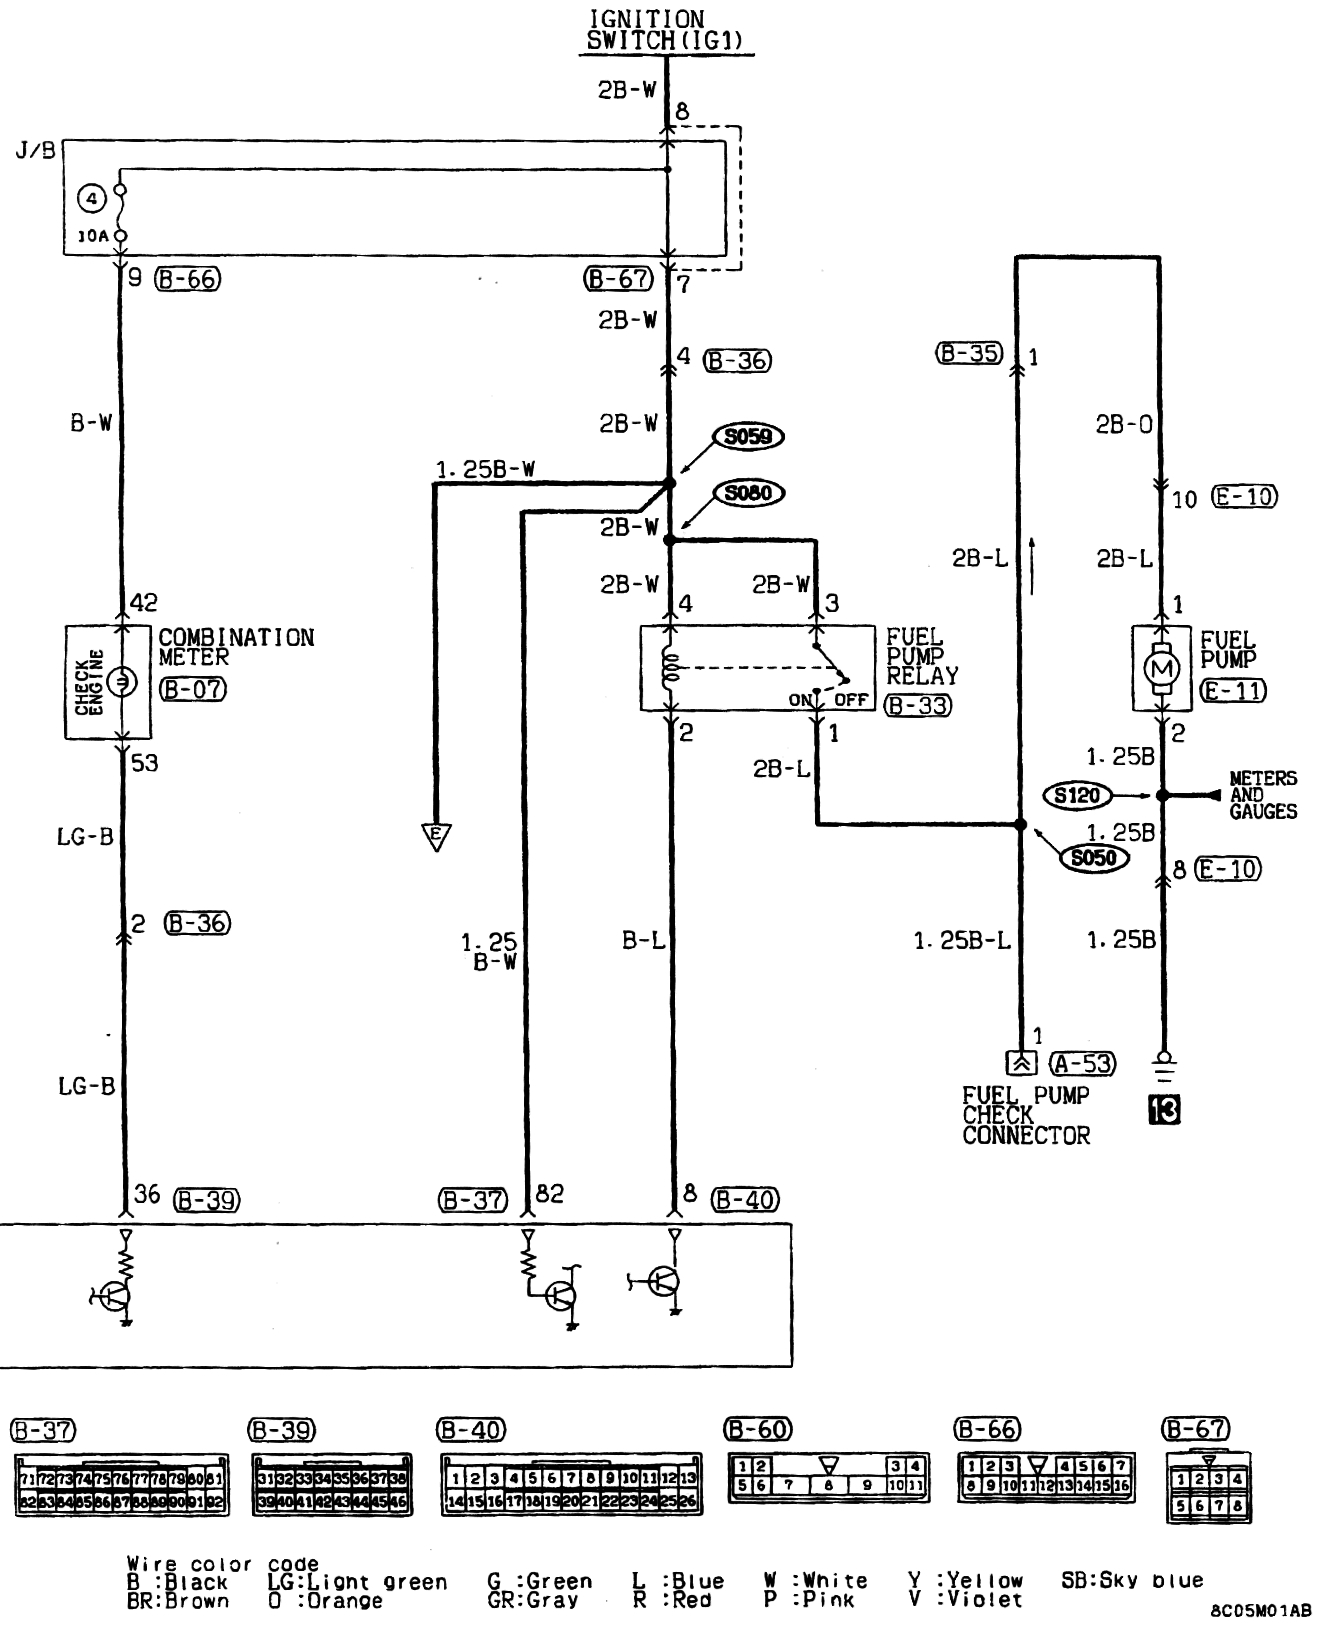 1997 mitsubishi mirage headlight wiring diagram wiring diagram library 2001 Mitsubishi Diamante Wiring Diagram 1997 mitsubishi mirage headlight wiring diagram